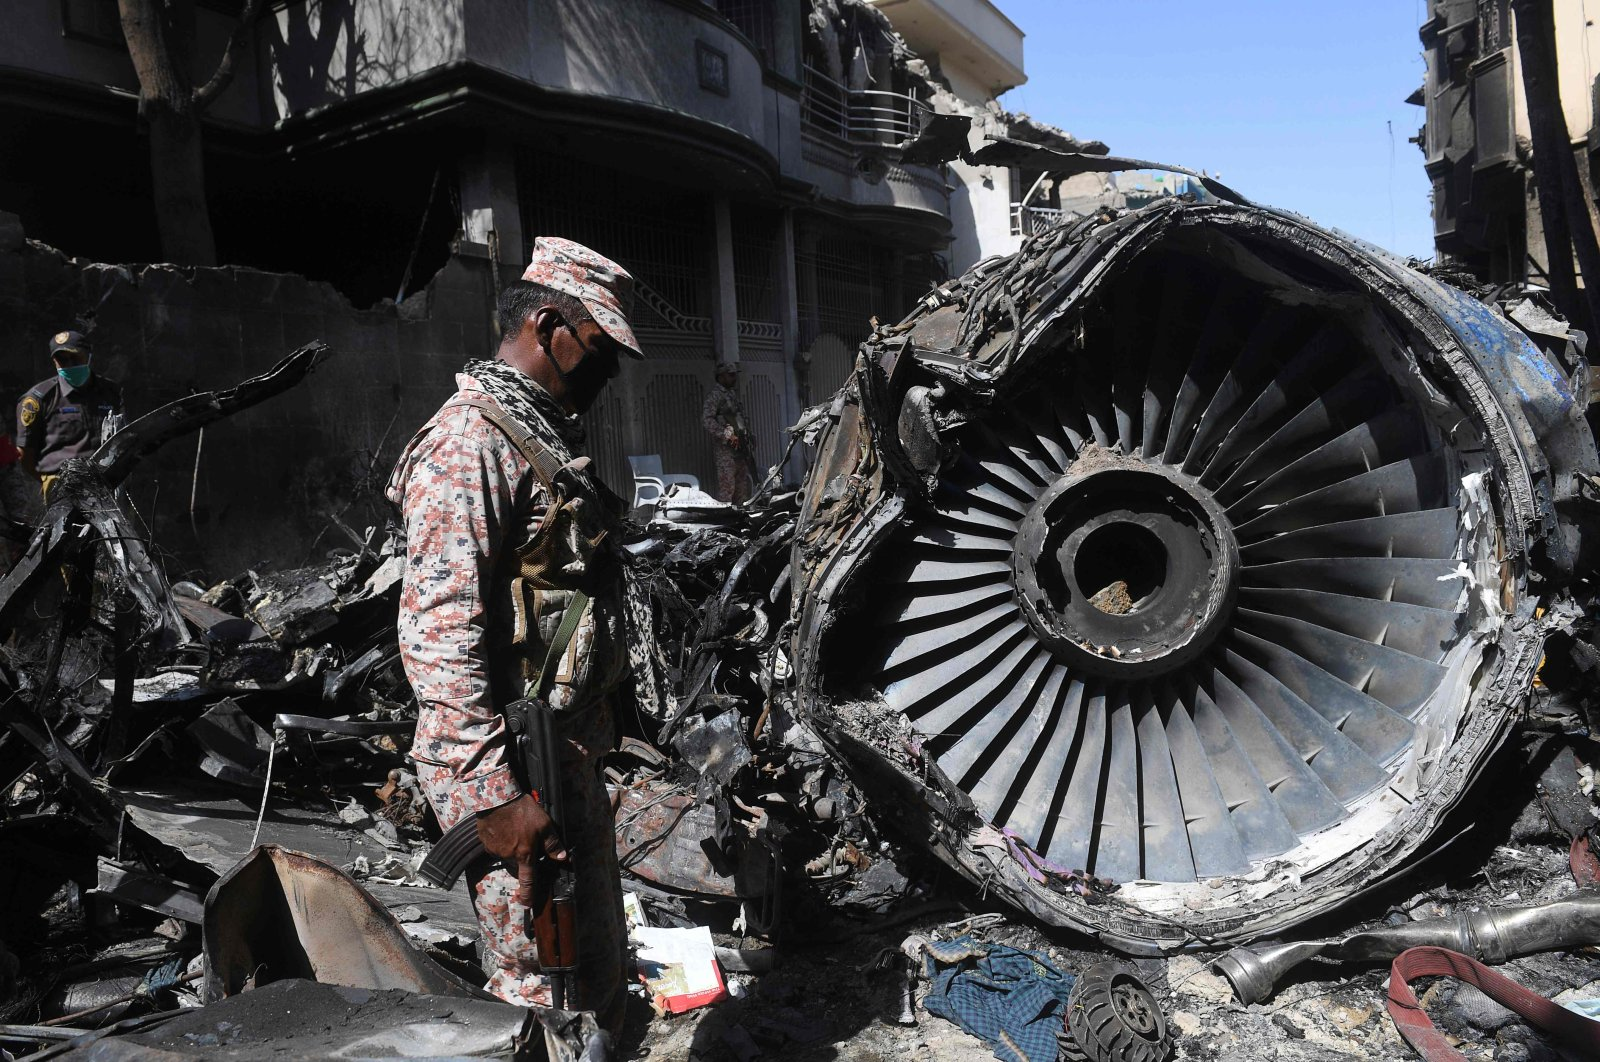 Security personnel stand beside the wreckage of a plane at the site after a Pakistan International Airlines aircraft crashed in a residential area in Karachi, on May 24, 2020. (AFP Photo)